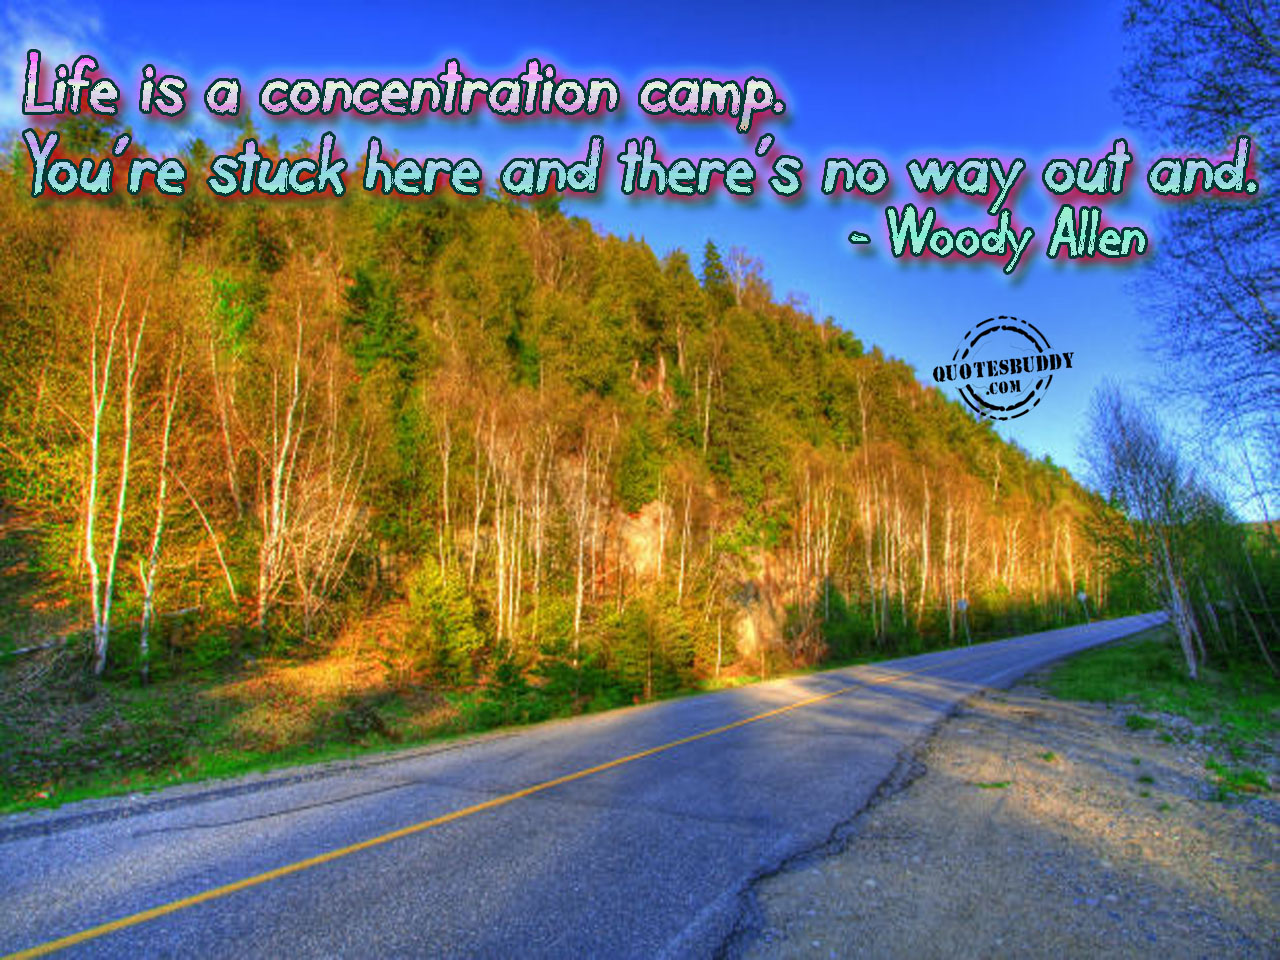 Life is a concentration camp. You're stuck here and there's no way out and. Woody Allen